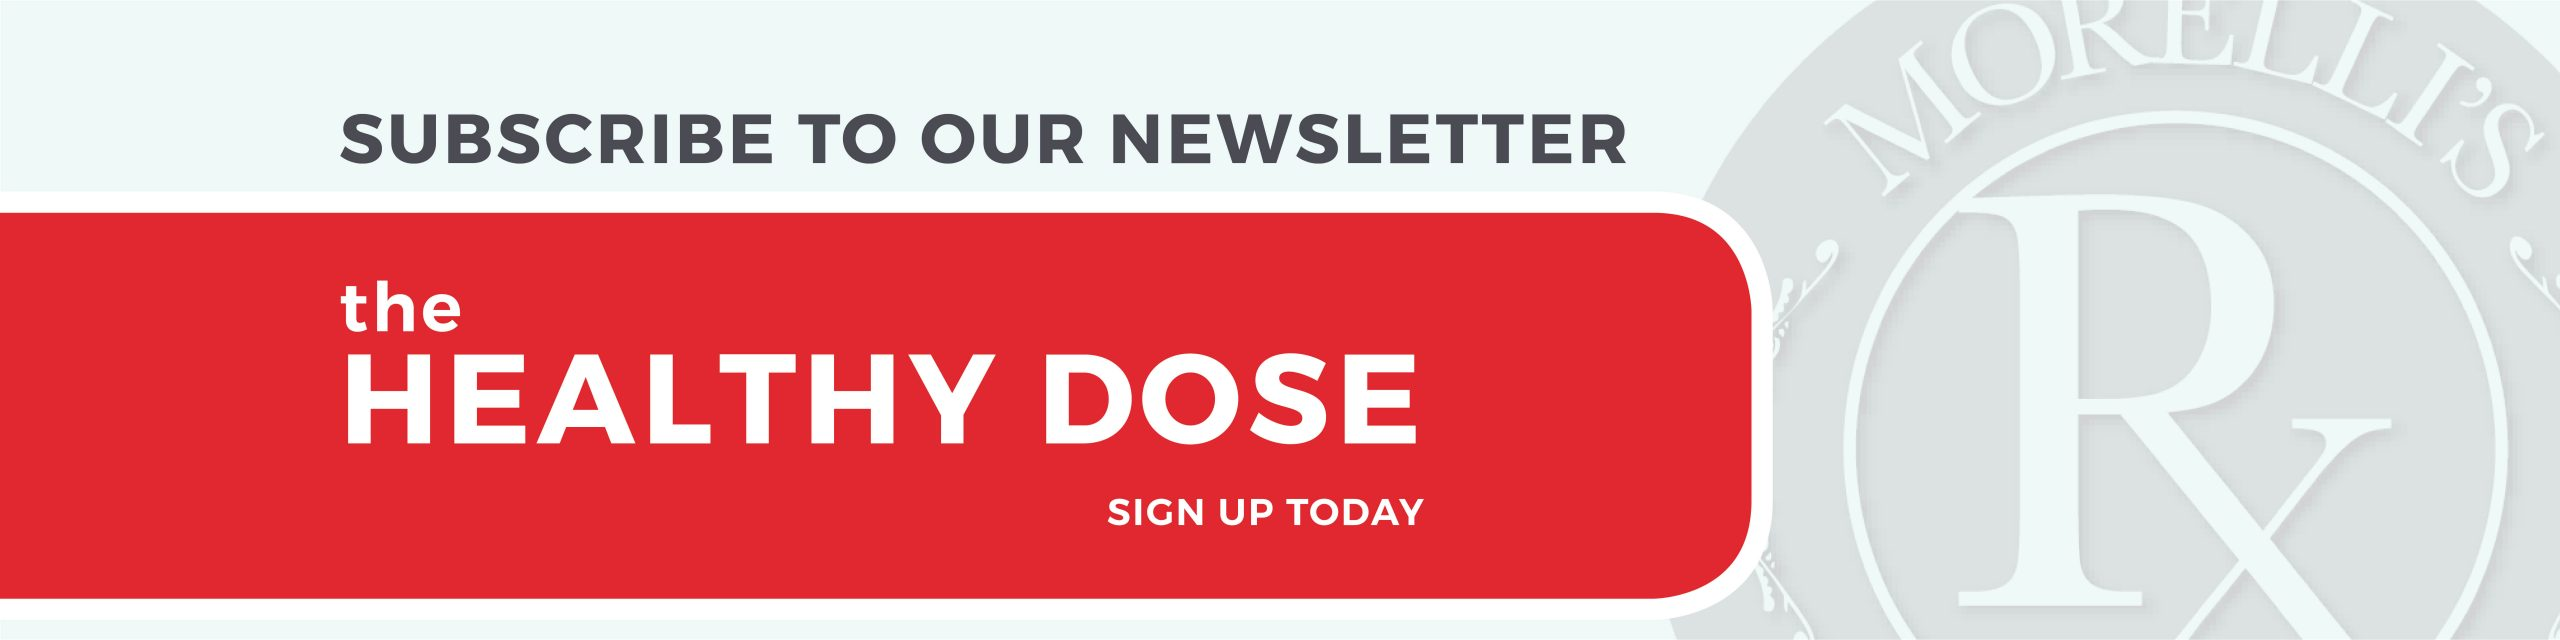 Morelli's monthly health newsletter, The Healthy Dose, signup graphic.